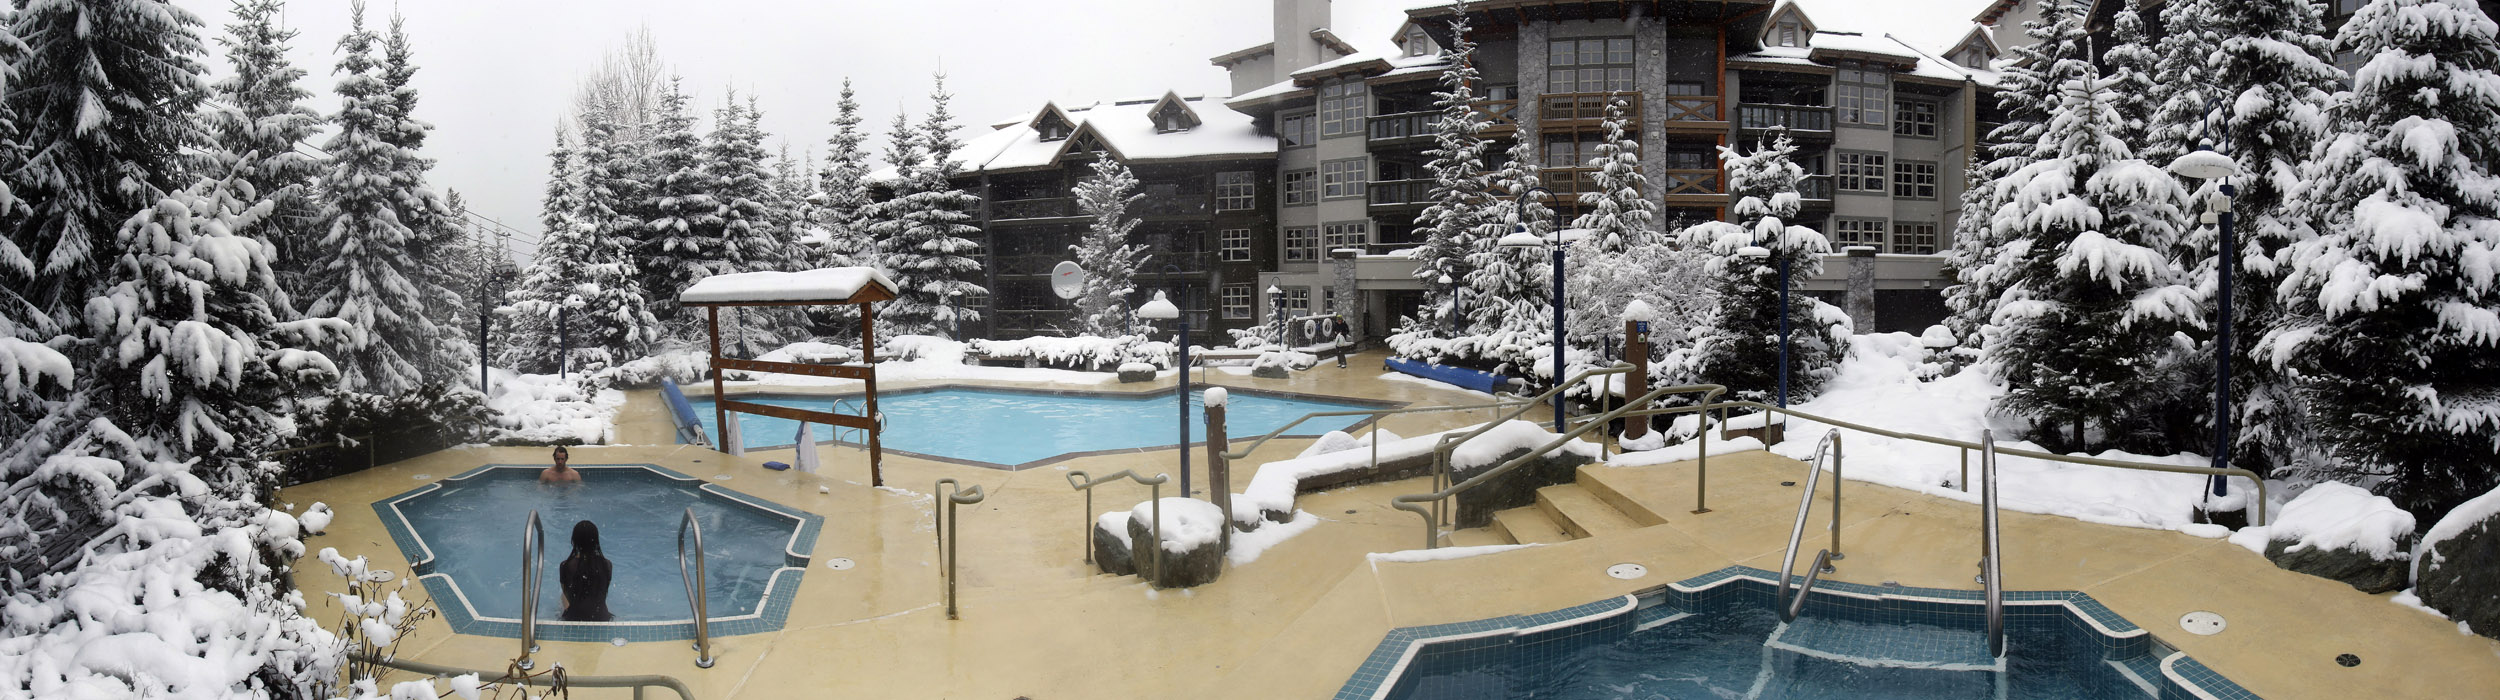 Canada Whistler wintersport Lodge Hotel